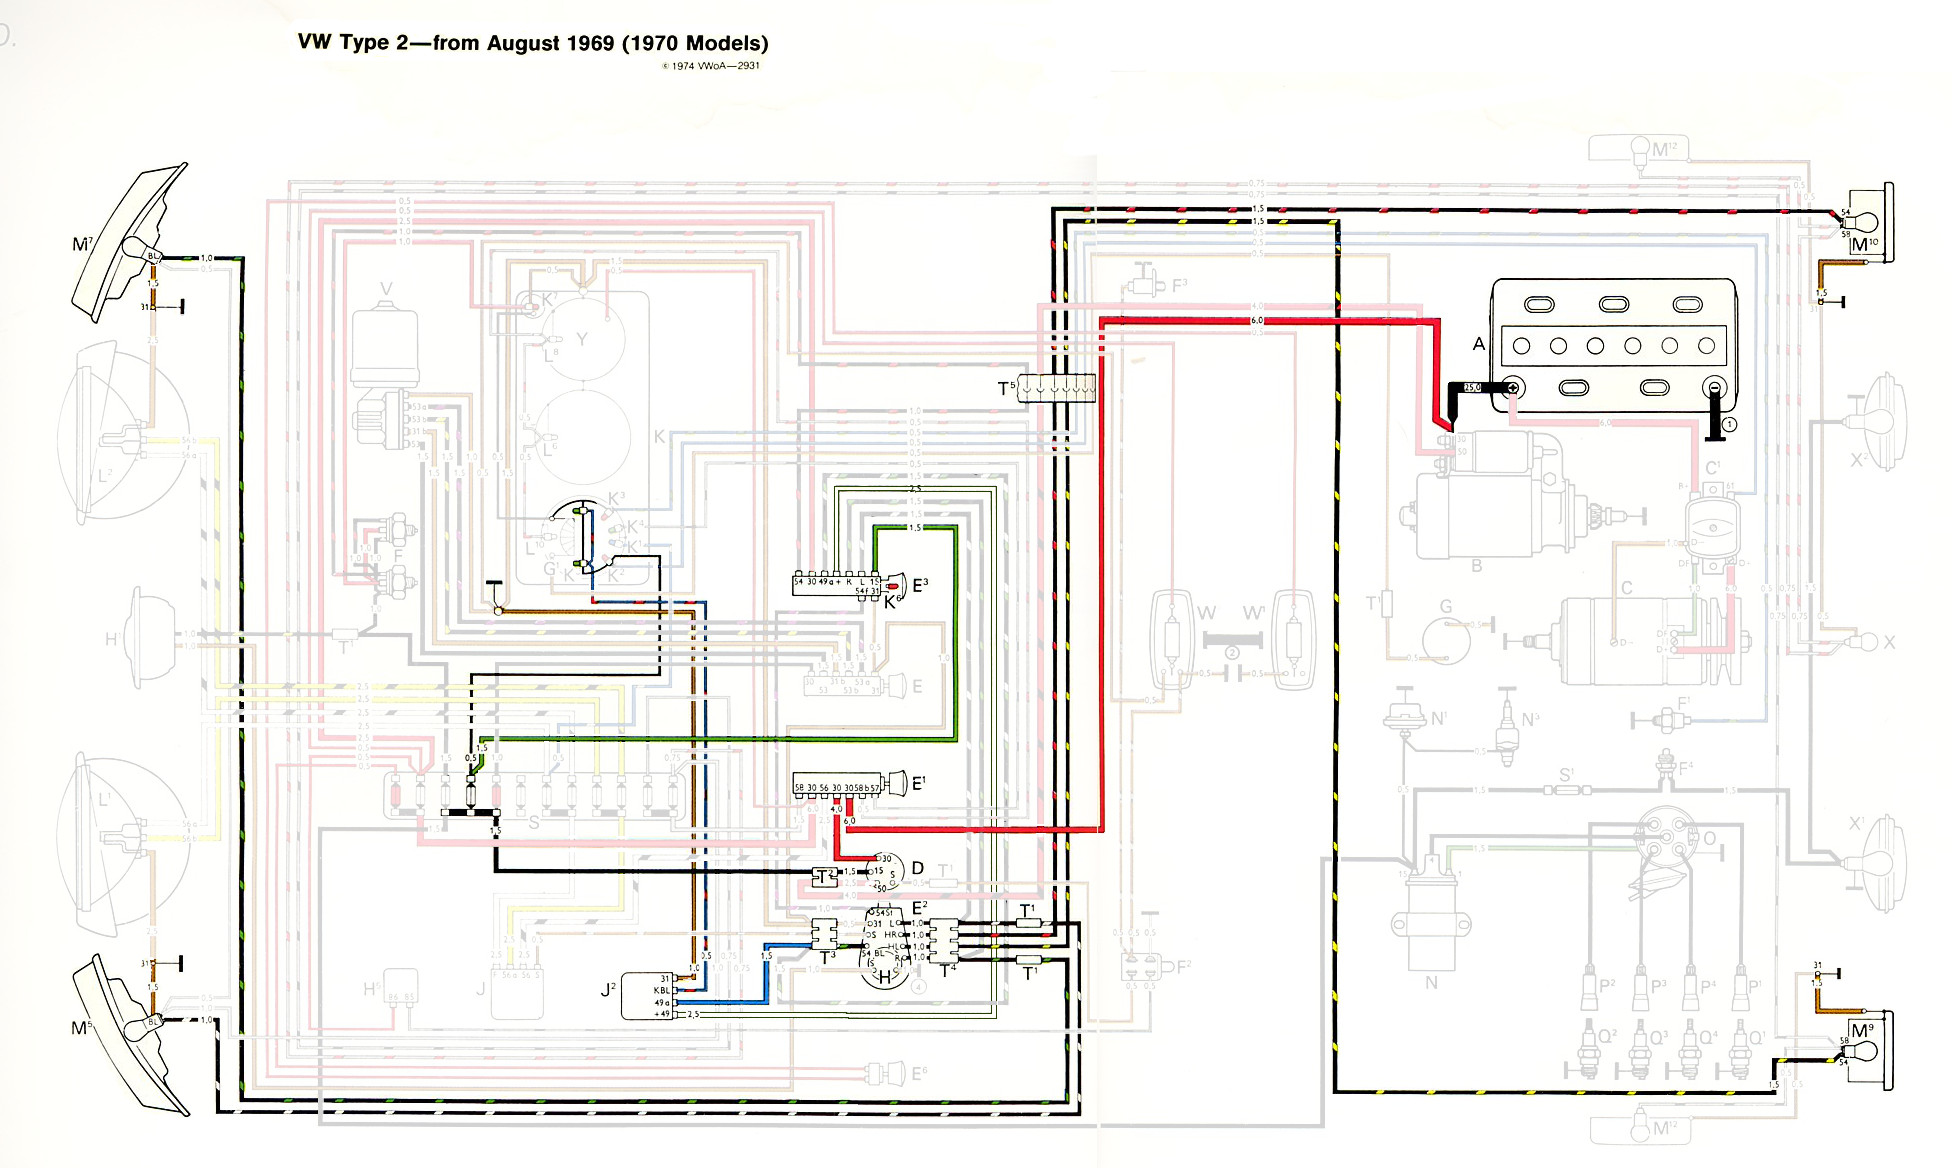 1970bus_signals 1970 vw beetle wiring diagram 1967 vw beetle wiring diagram Wiring Harness Diagram at honlapkeszites.co